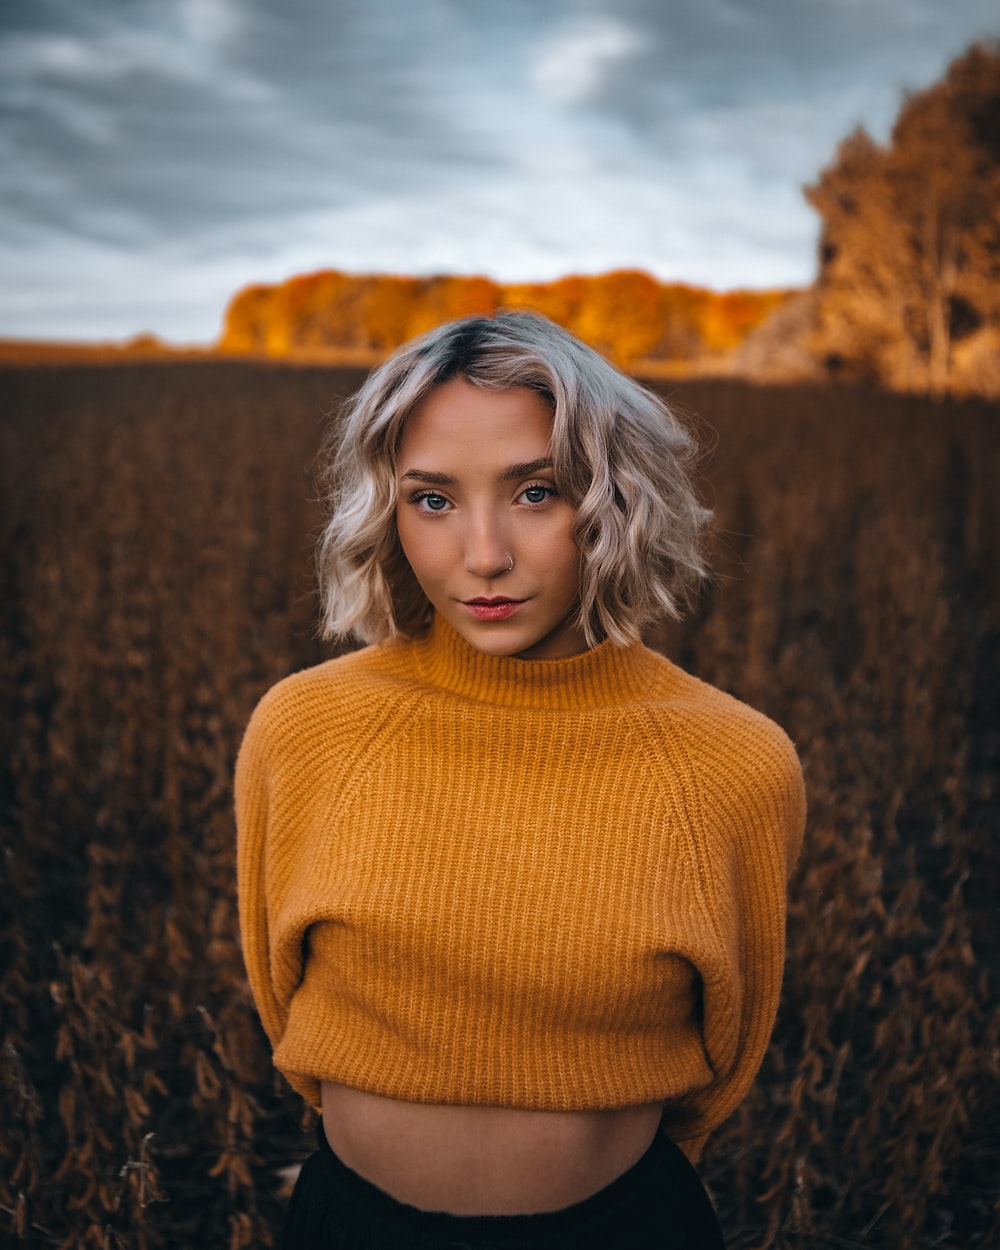 woman in brown turtleneck sweater standing on brown grass field during daytime